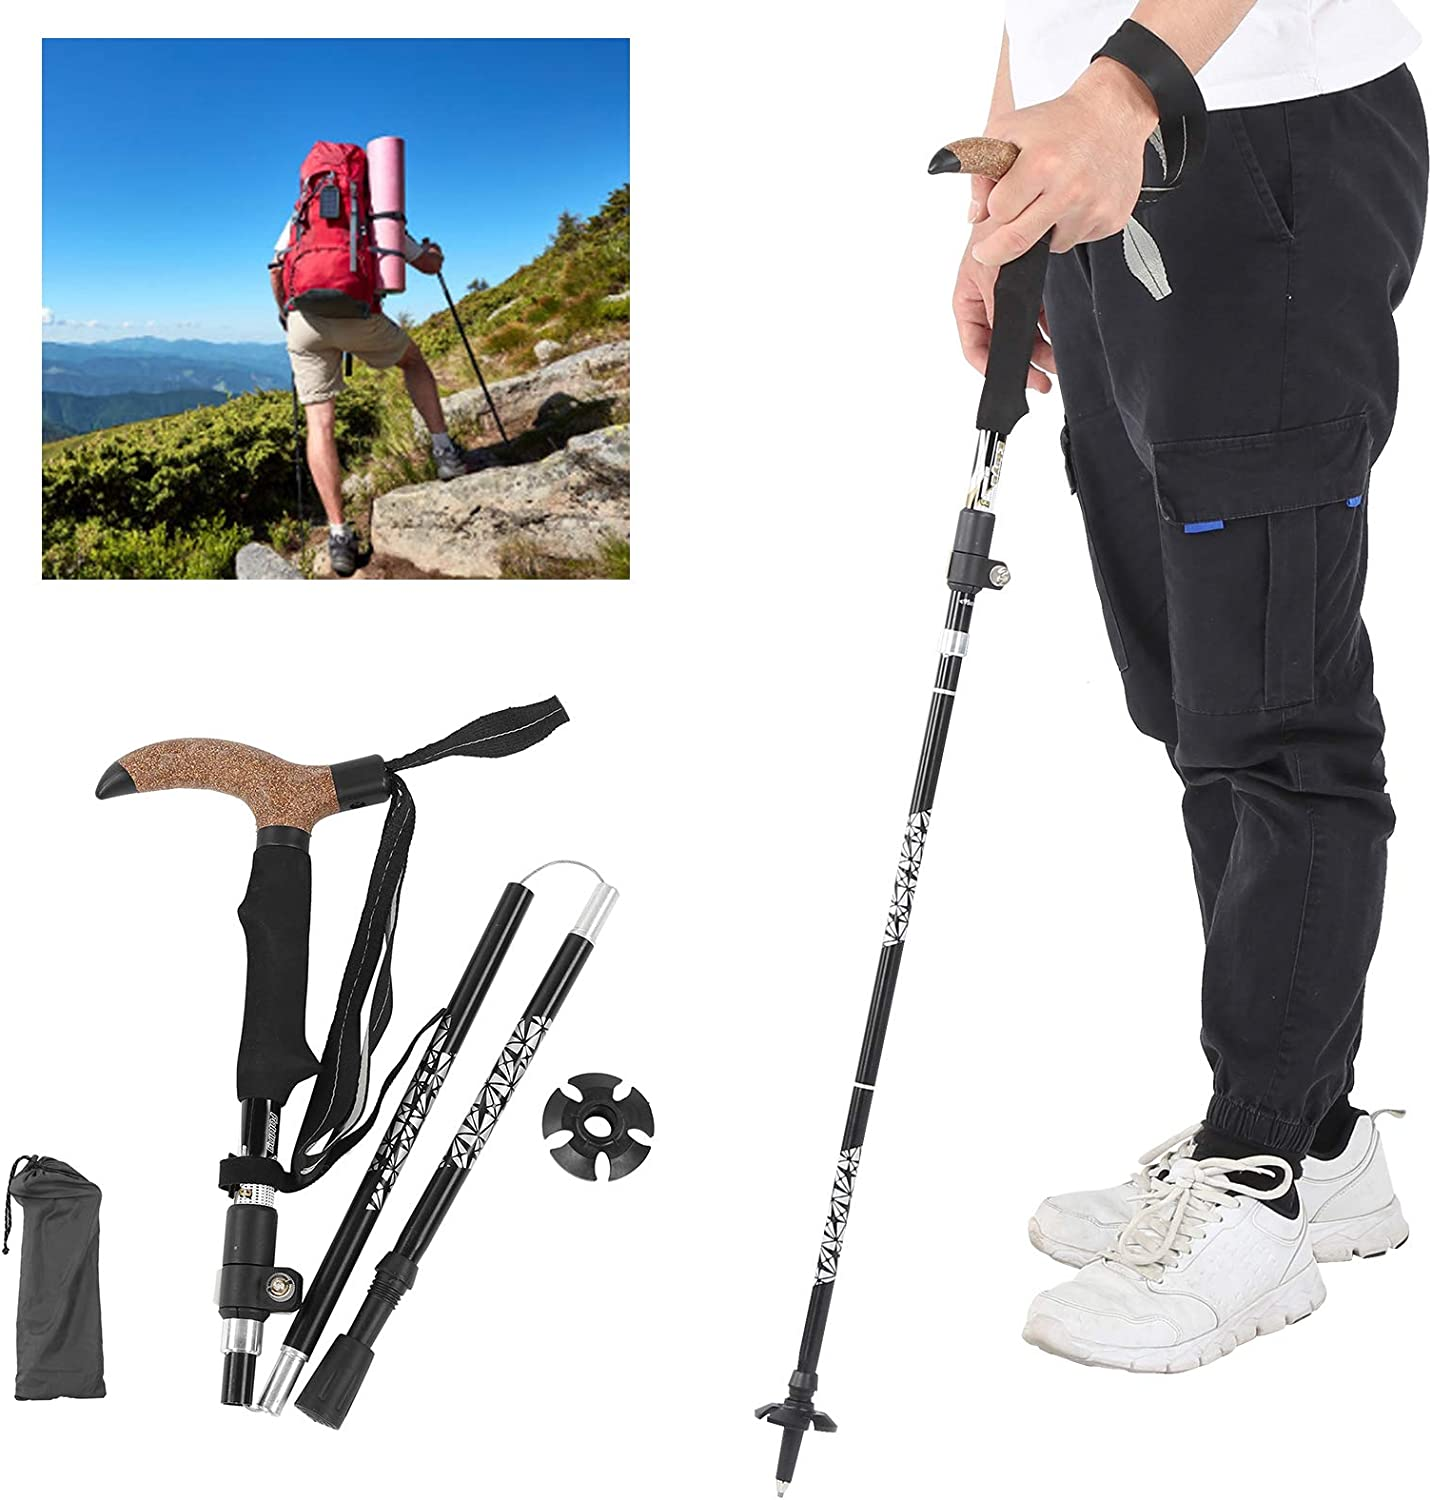 01 Popular overseas Hiking Poles T Handle Metal Hiki Walking Portable for Max 62% OFF Stick